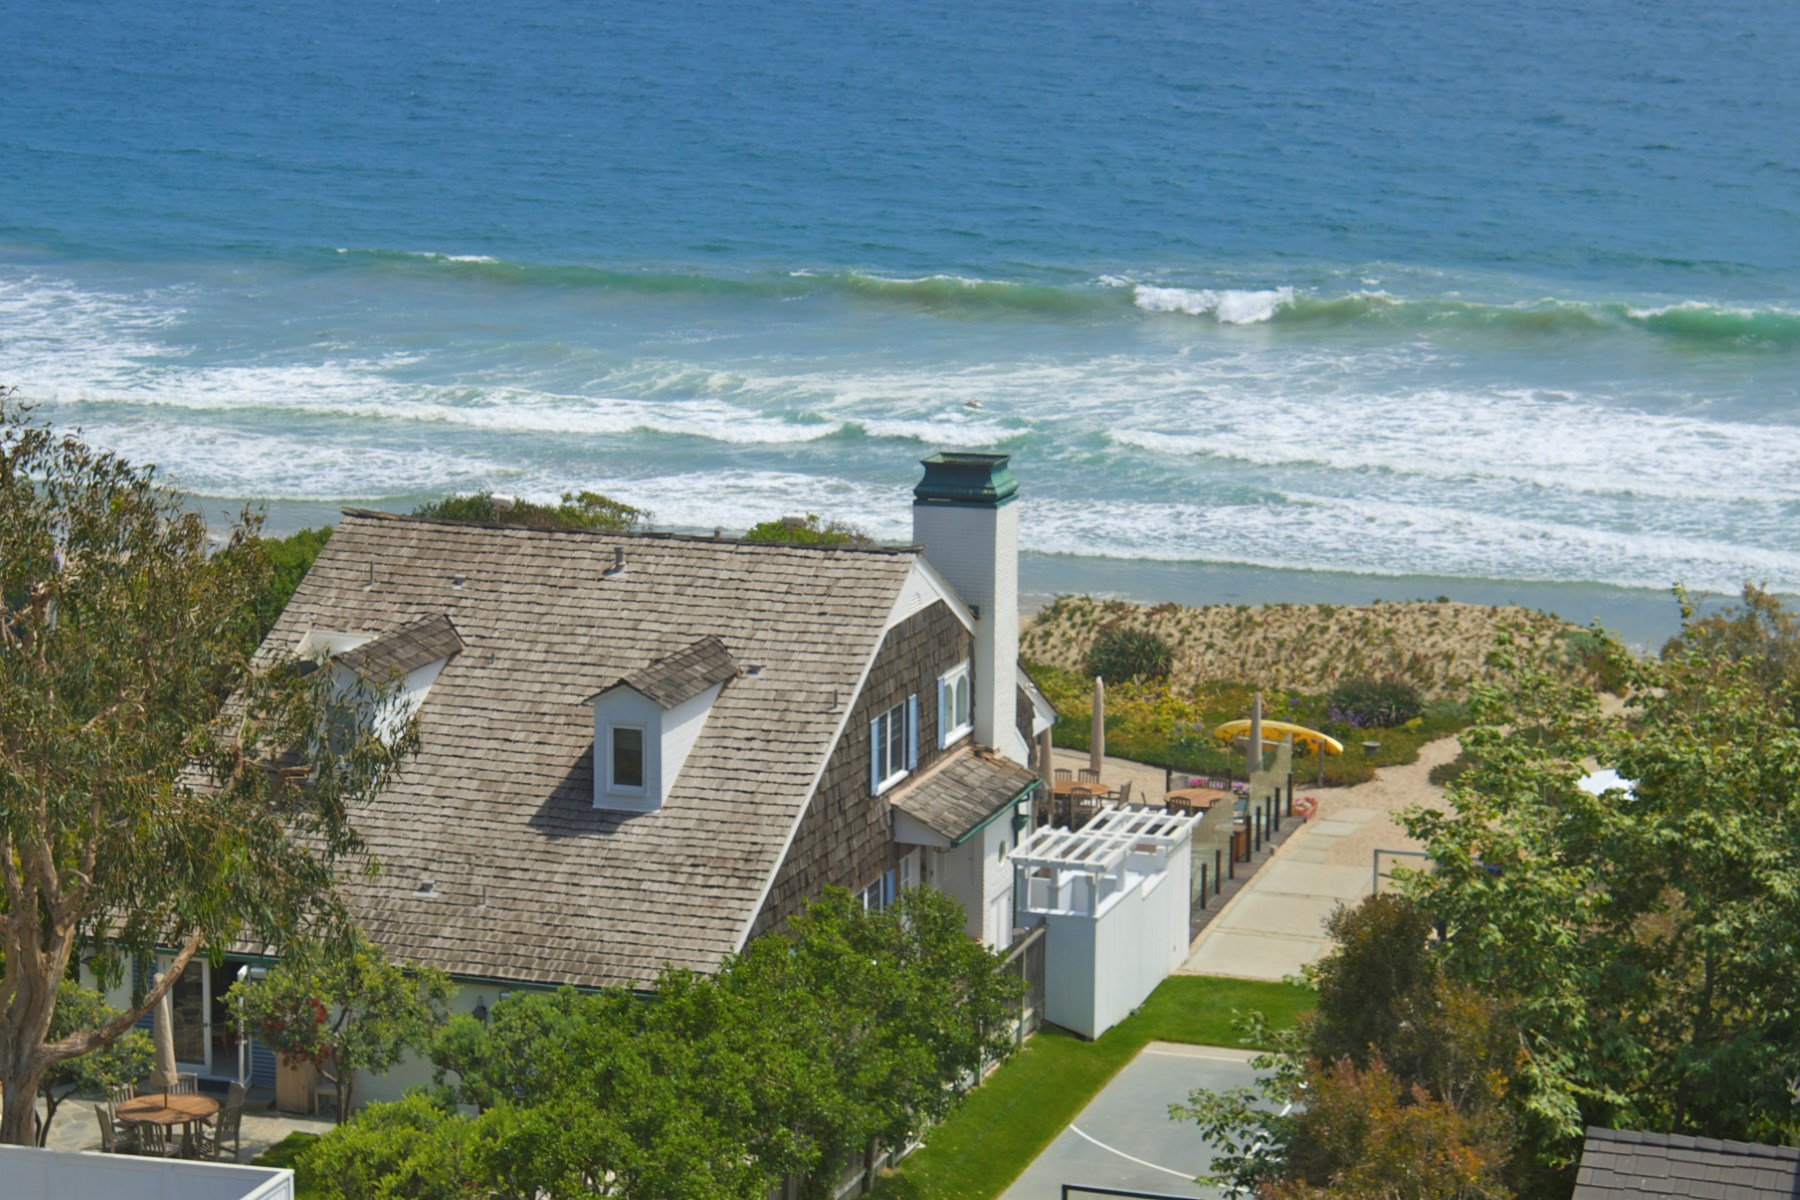 Single Family Home for Rent at 31202 Broad Beach Rd Malibu, California 90265 United States